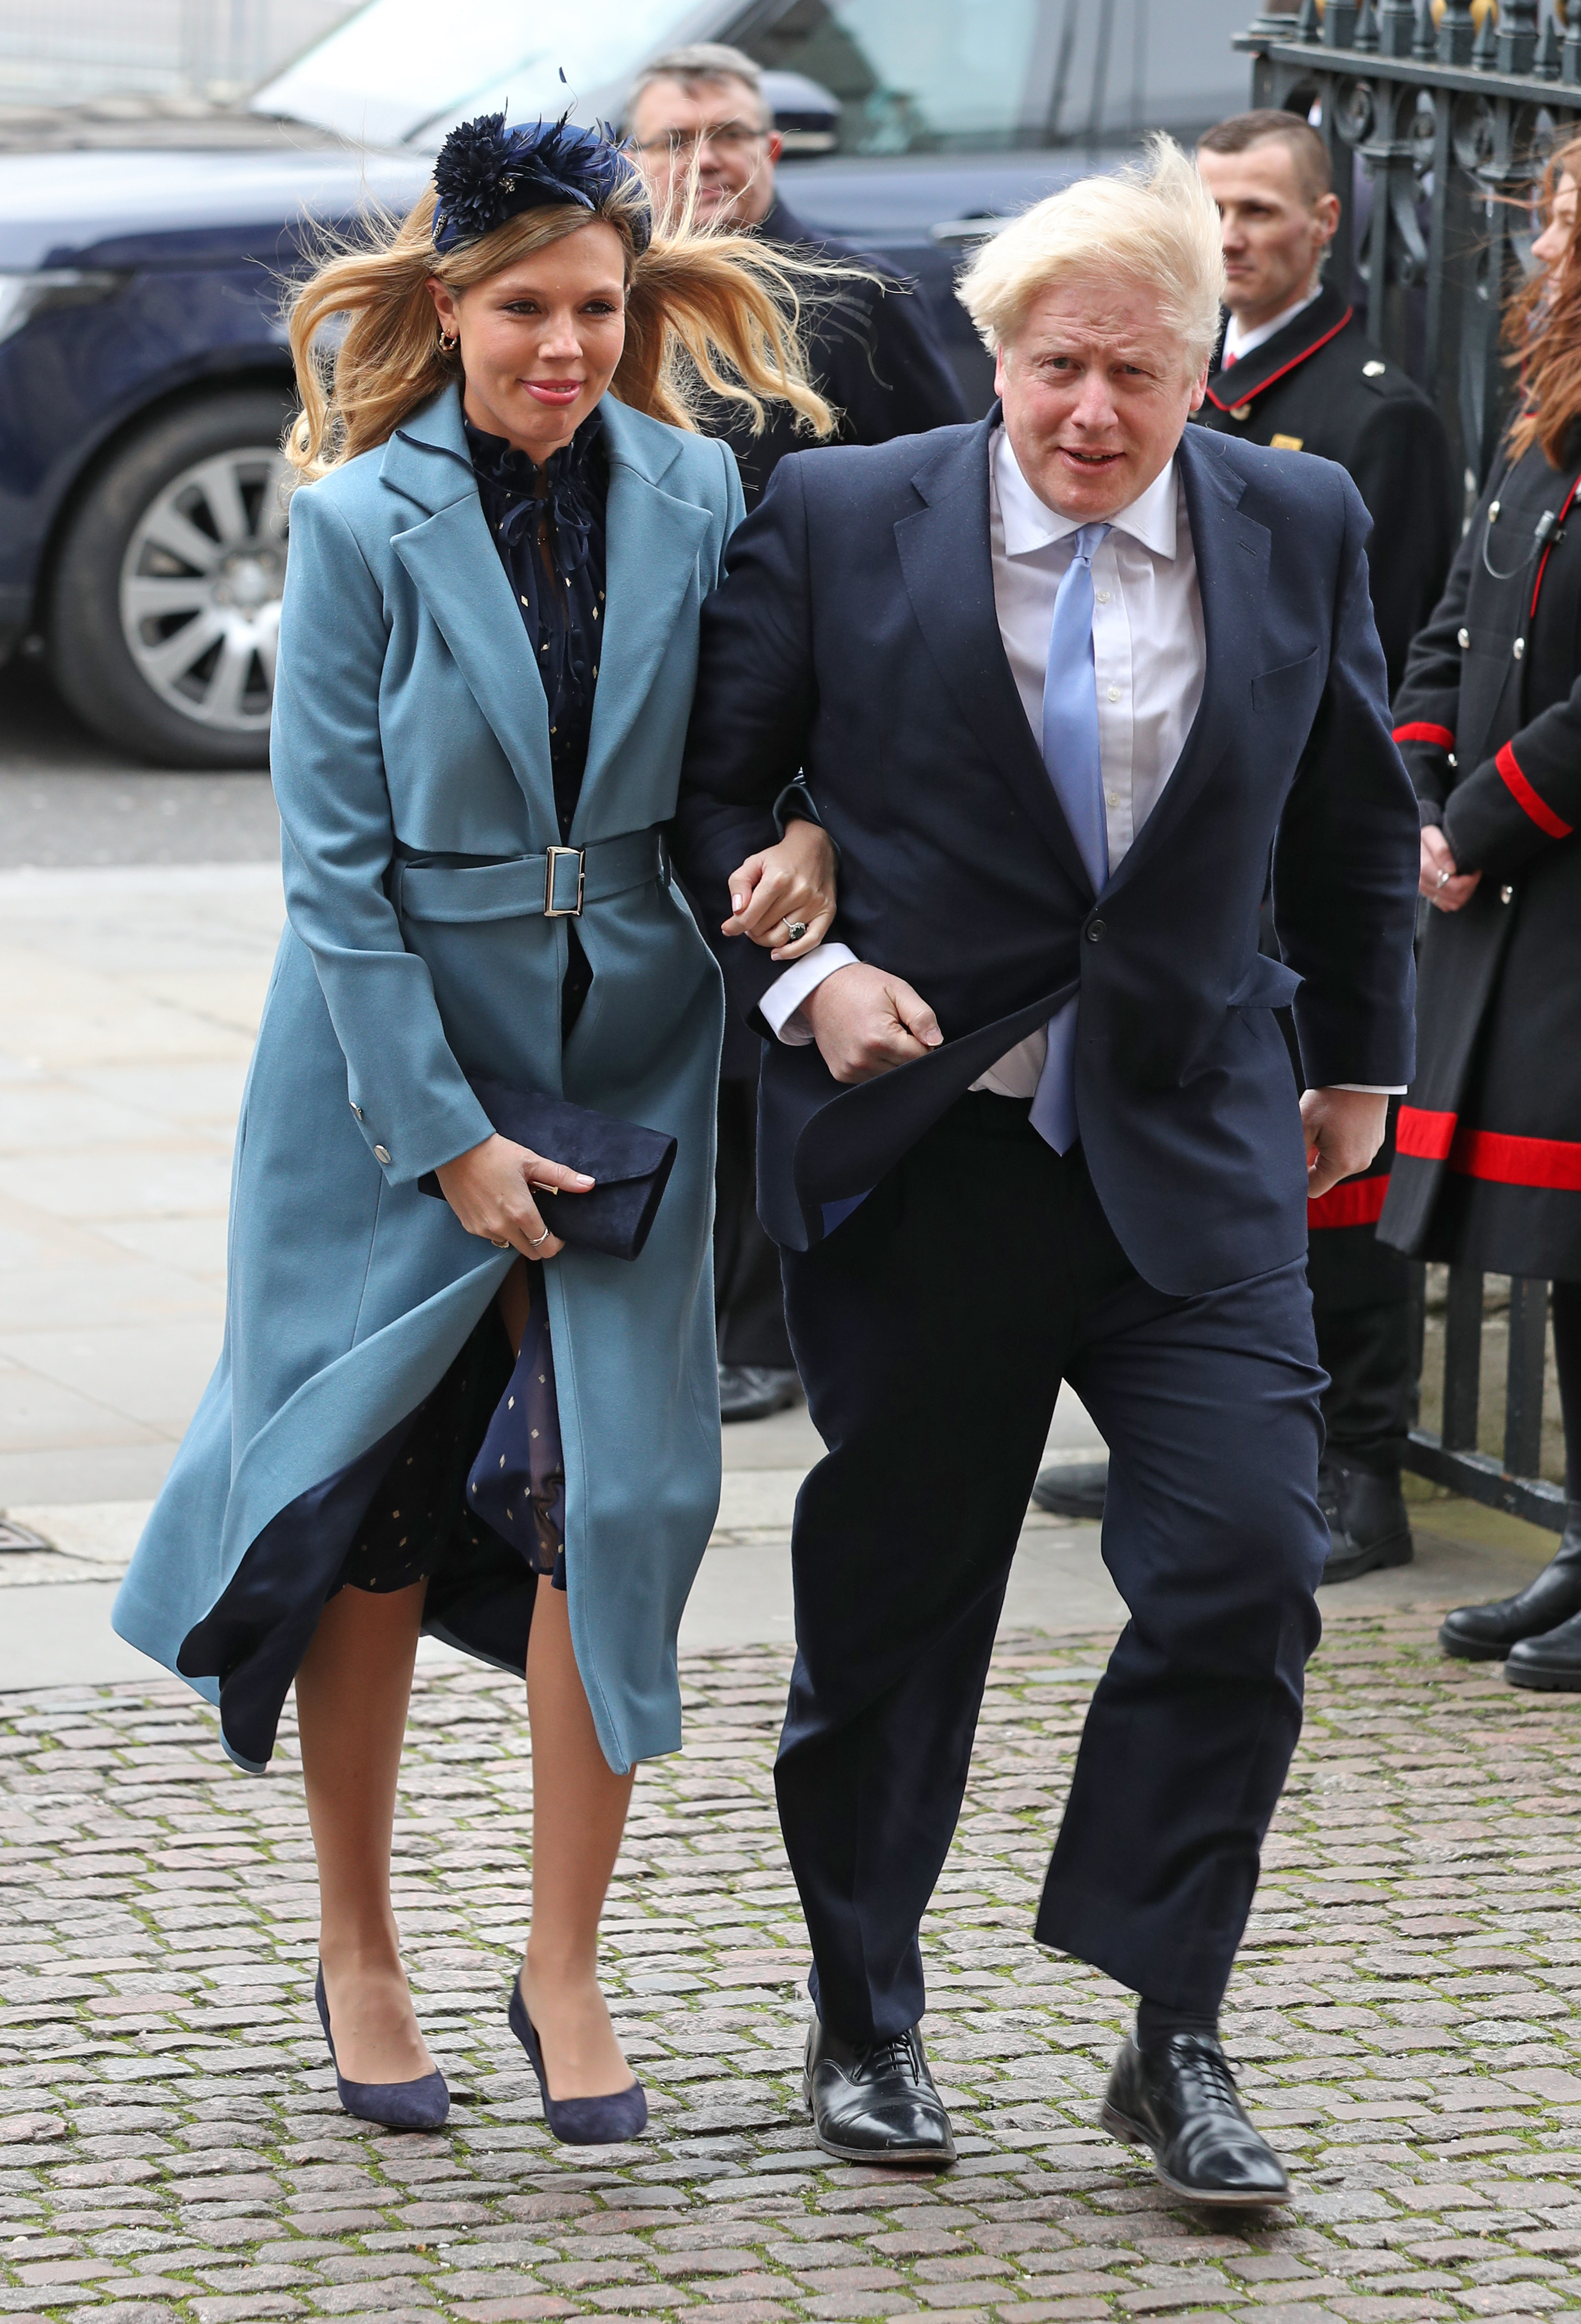 File photo dated 09/03/20 of Prime Minister Boris Johnson and partner Carrie Symonds arriving at the Commonwealth Service at Westminster Abbey, London on Commonwealth Day.